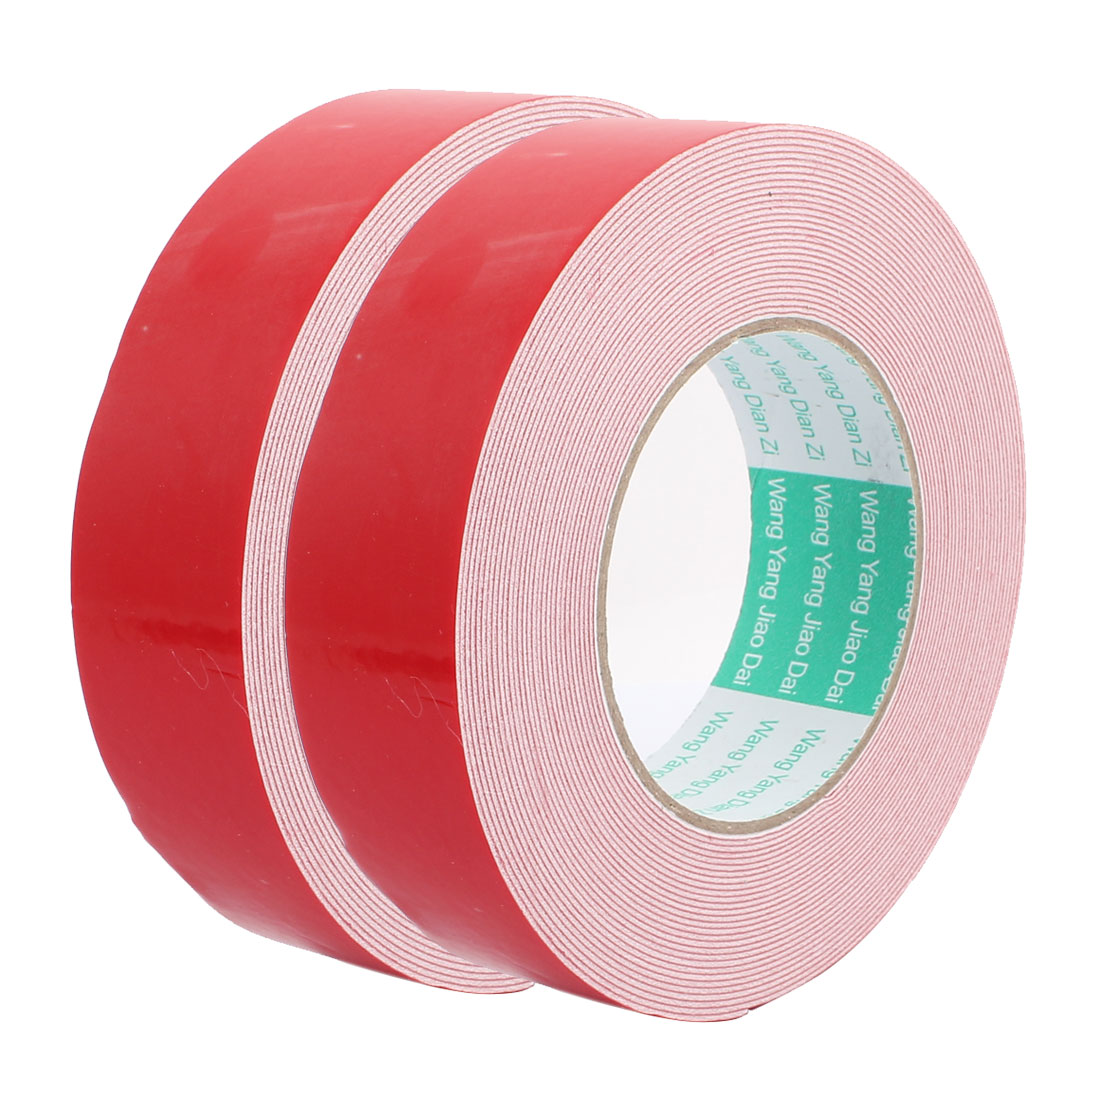 2pcs 10M 35mm x 1mm Dual-side Adhesive Shockproof Sponge Foam Tape Red White